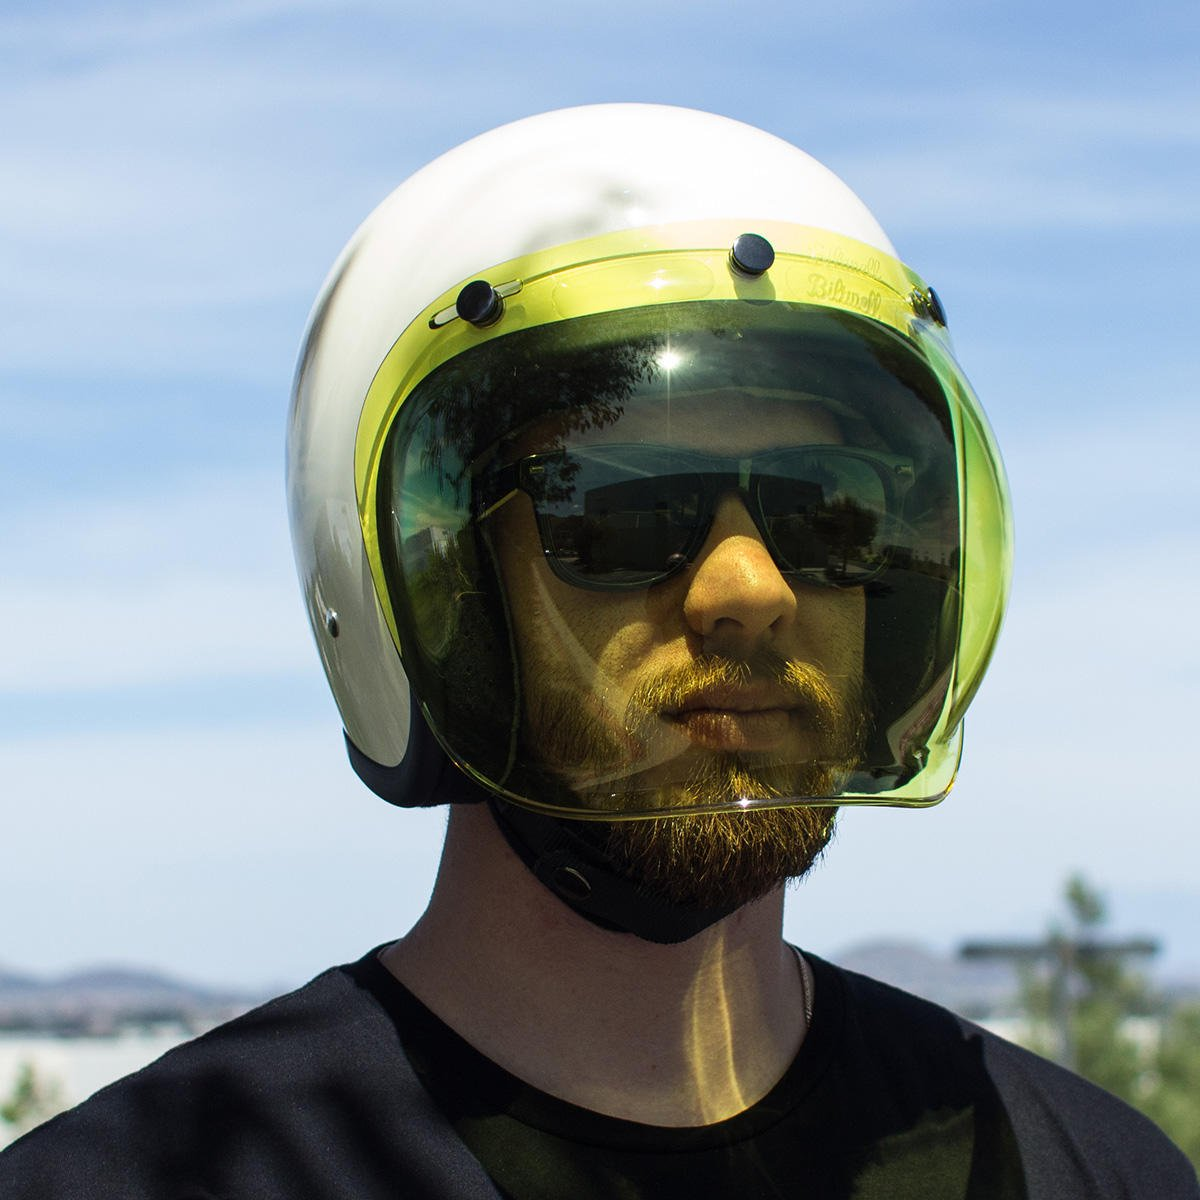 Bubble Visor Three Buttons Flip Yellow Gold Universal for Jet Helmet Compatible with Helmets Biltwell Bell DMD Bandit AFX Nolan AGV